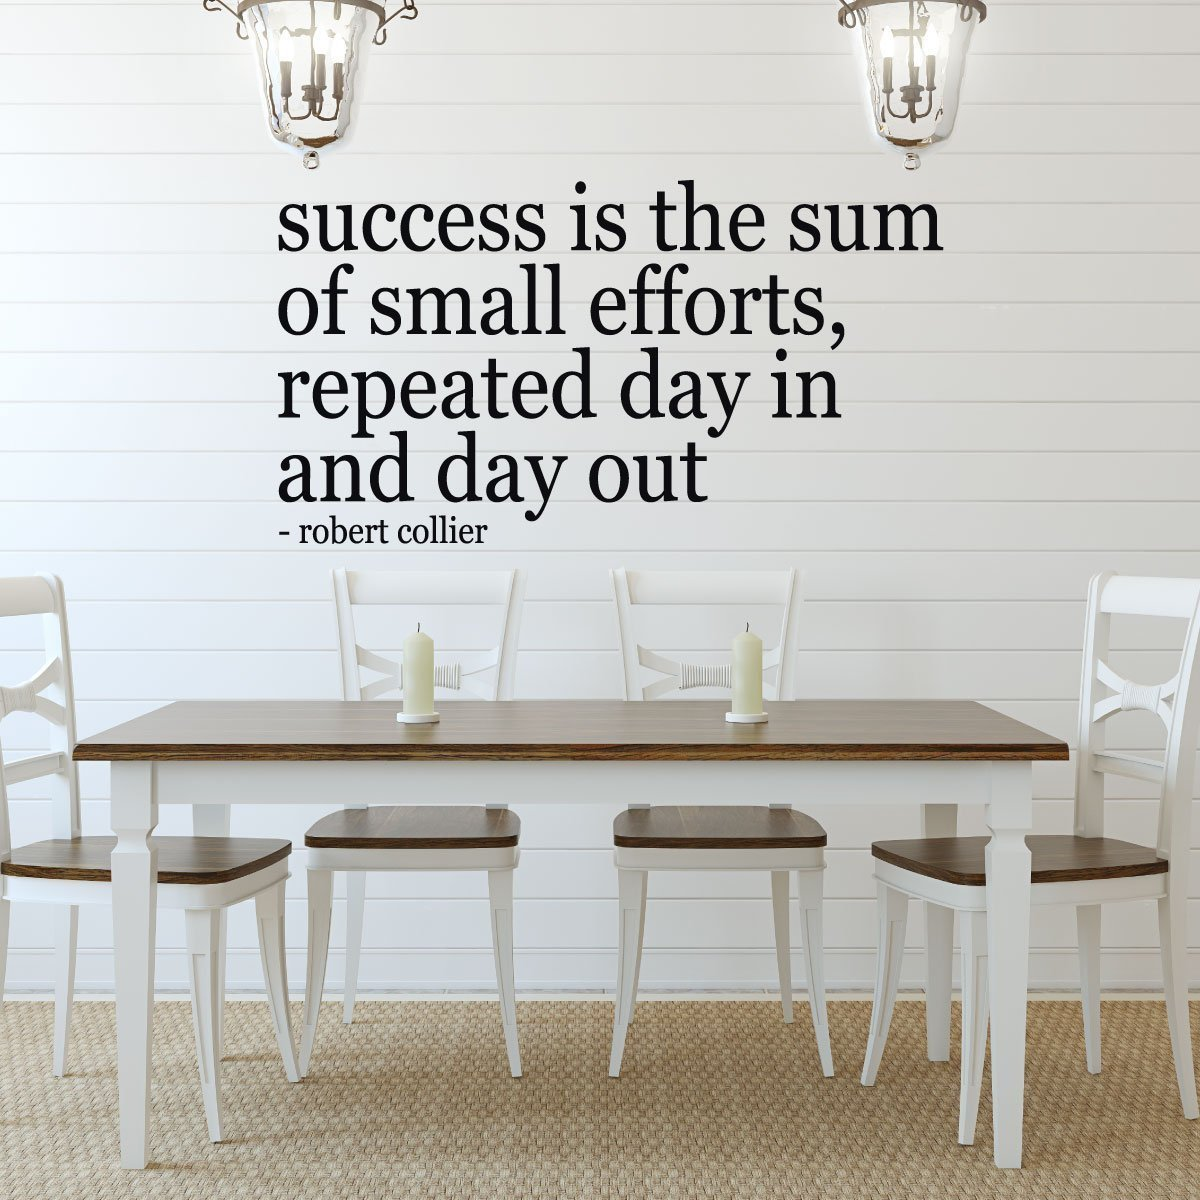 "Success Quote Wall Decal, Robert Collier Motivational Vinyl Saying: ""Success is the Sum of Small Efforts"" - Inspirational Design for Home"